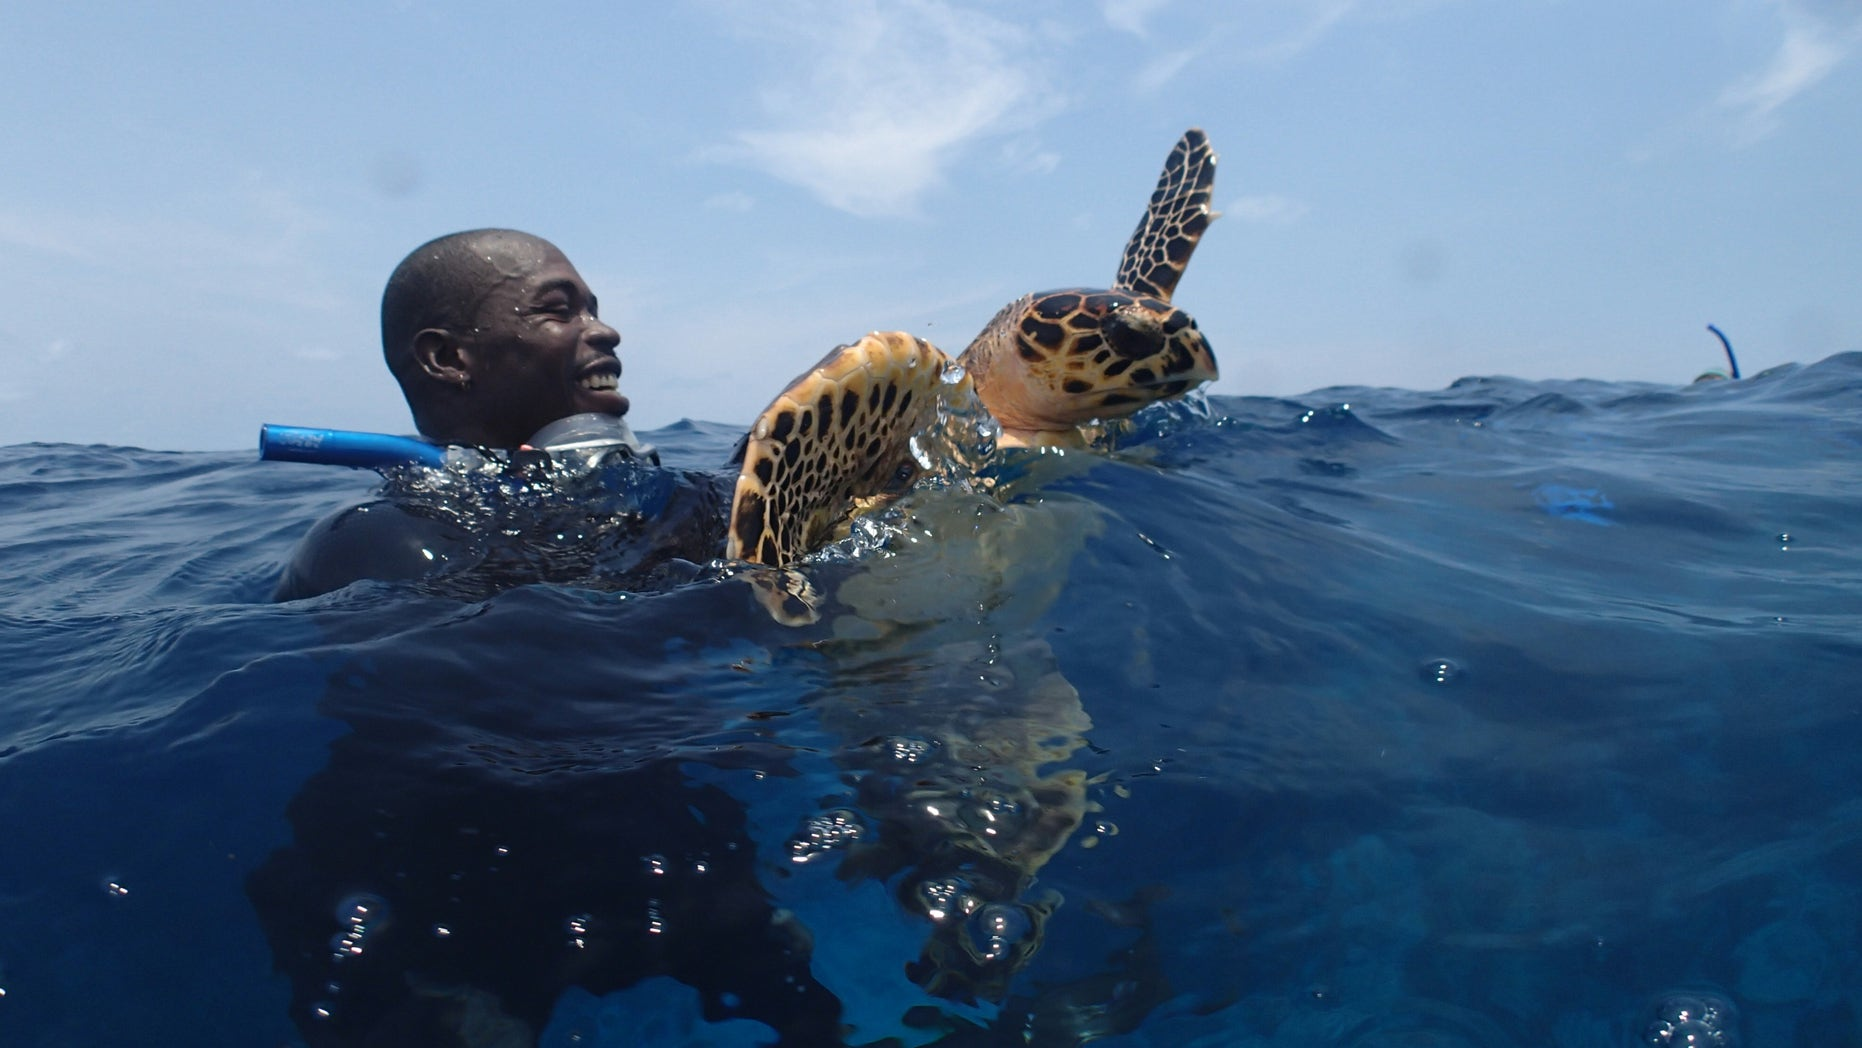 : A marine scientist holding a hawksbill sea turtle.